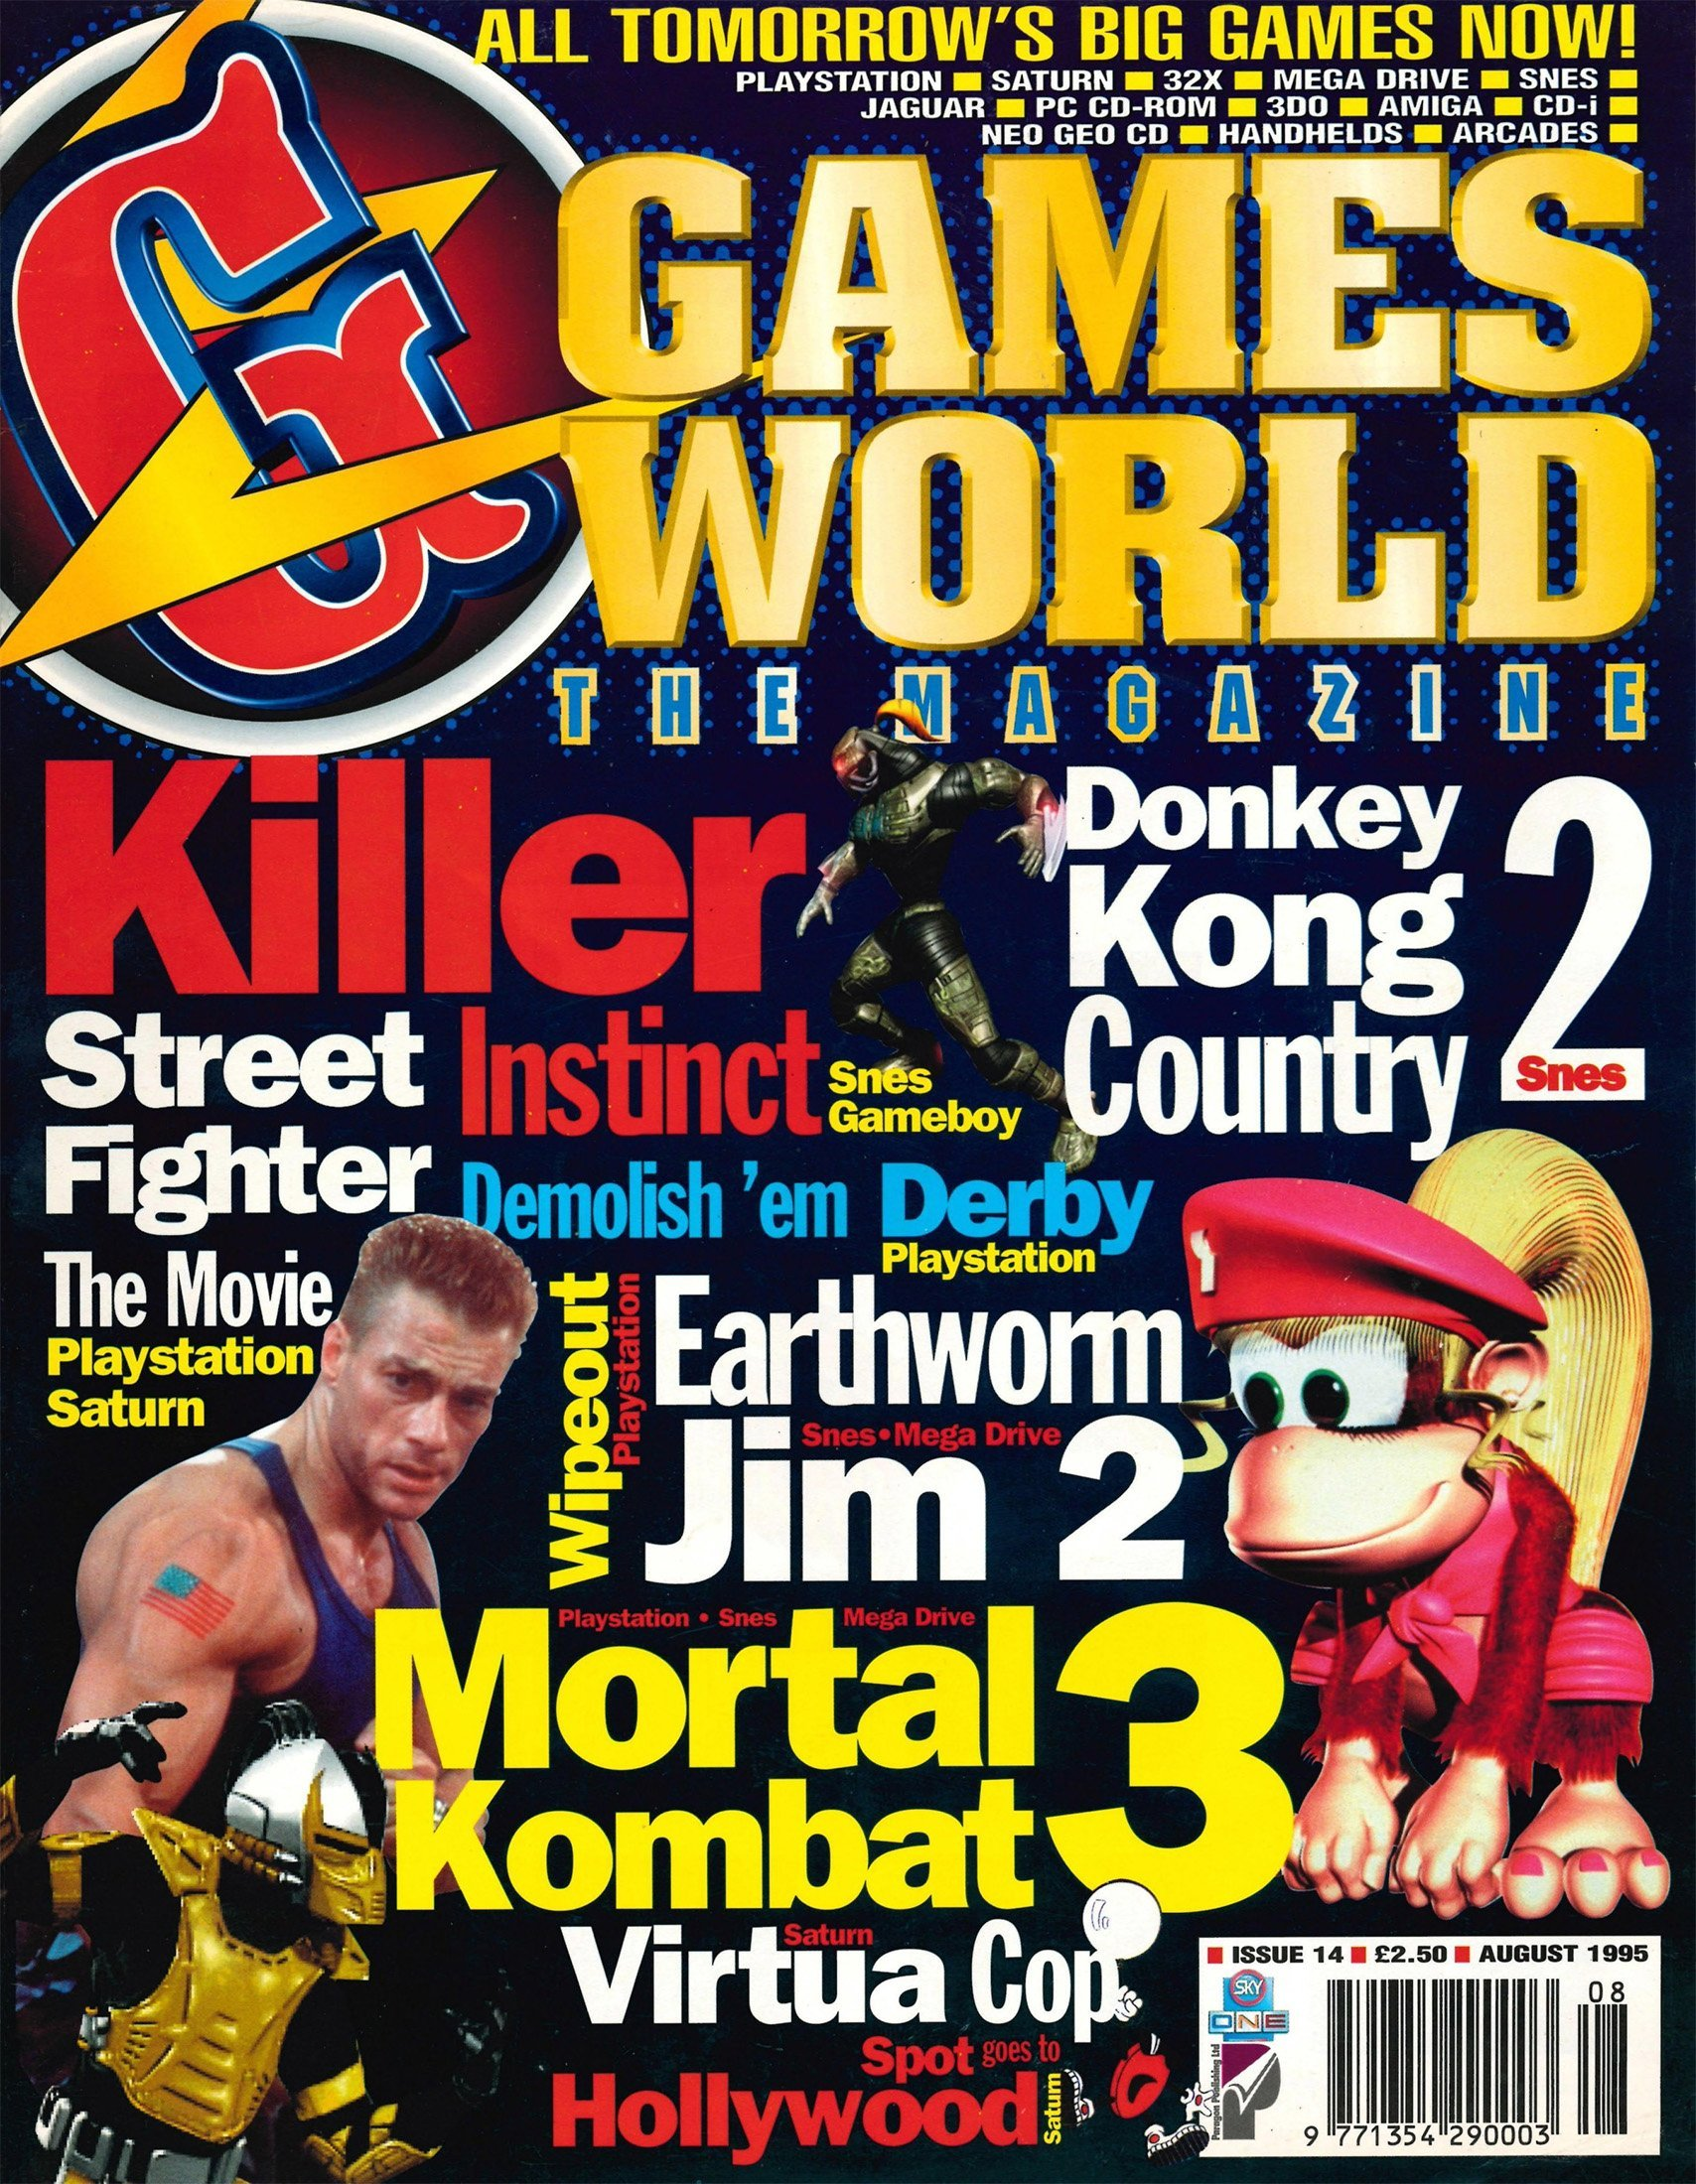 Games World Issue 14 (August 1995)